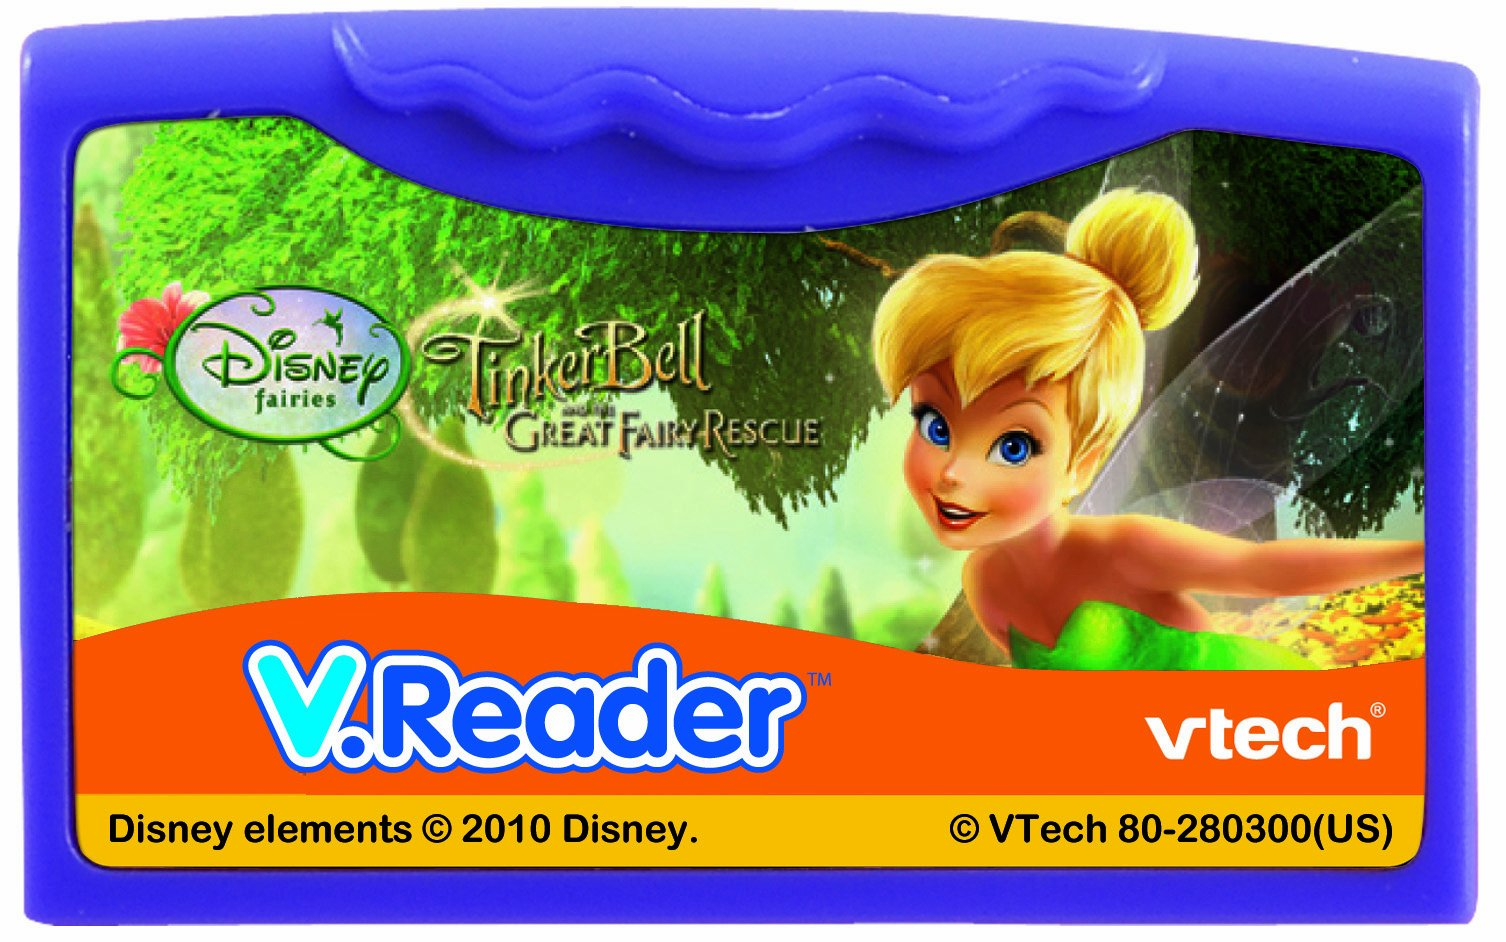 VTech - V.Reader Software - Disney's Fairies - Tinkerbell and The Great Fairy Rescue by VTech (Image #2)